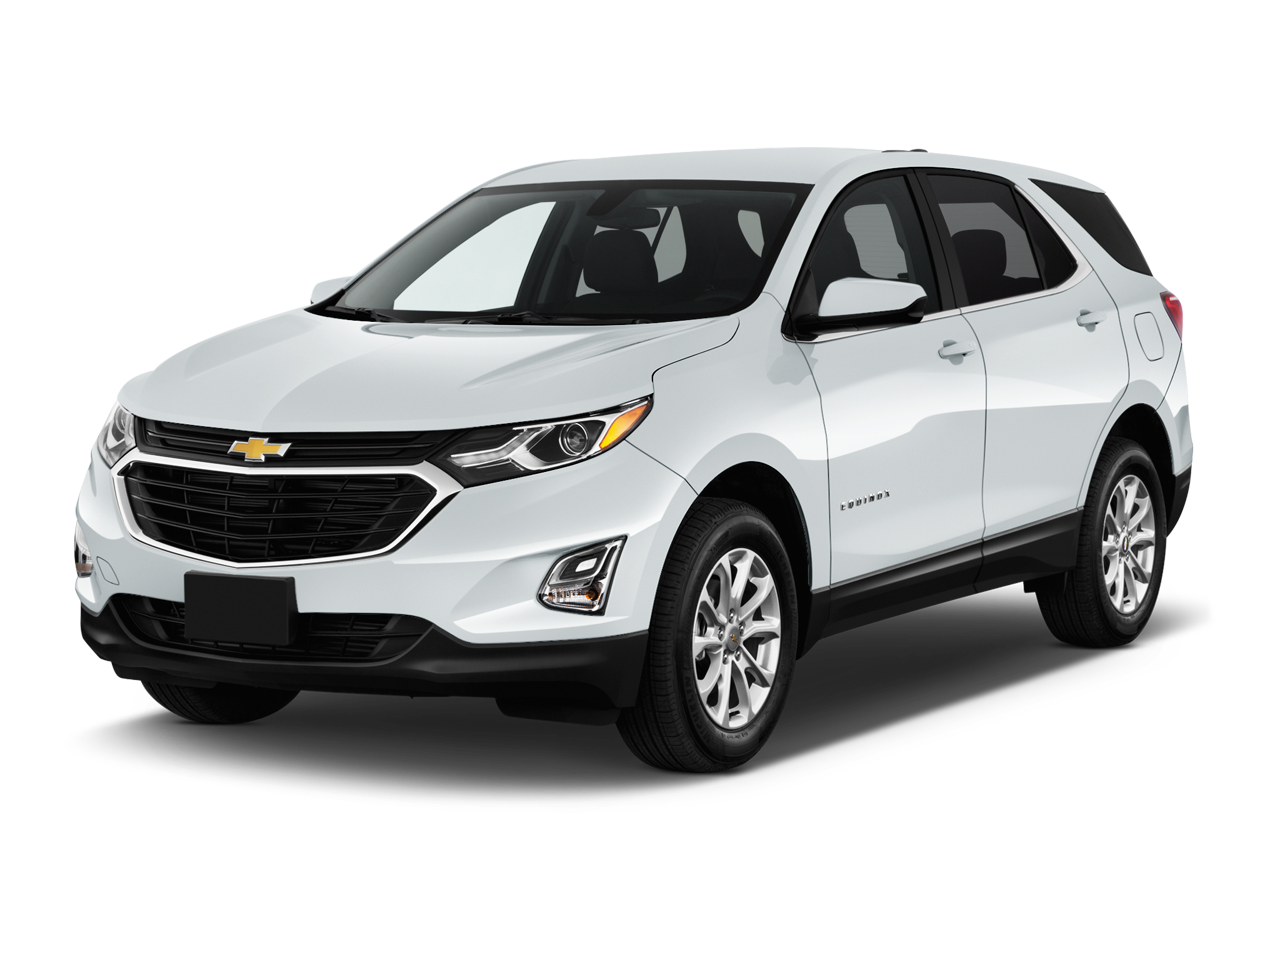 Equinox black chevy equinox : 2018 Chevrolet Equinox for Sale in Highland, IN - Christenson ...